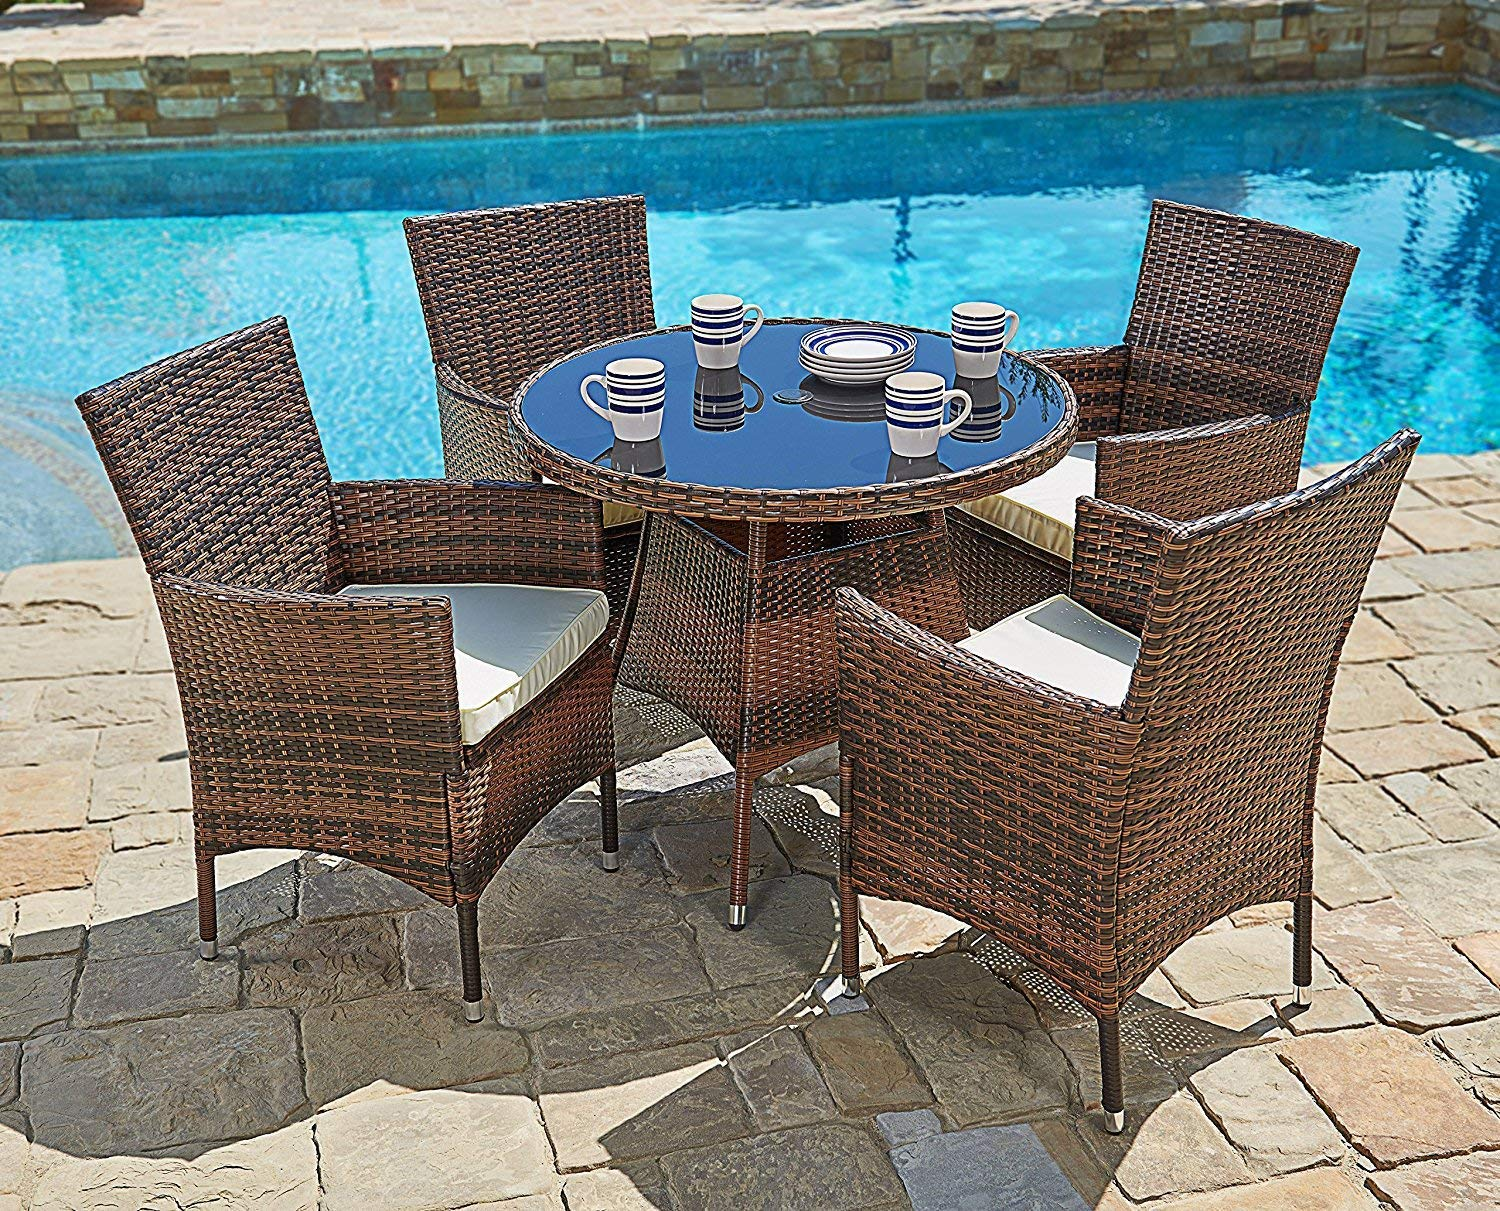 SUNCROWN Outdoor Furniture Patio 5-Piece Round Dining Table and Chairs Set, All-Weather Wicker with Washable Cushions and Tempered Glass Tabletop - COMPLETE DINING SET – Modern, stylized outdoor furniture, this wicker round dining table set comes with a tempered glass top table and four matching wicker chairs for relaxation. Cushion covers can be removed with a quick zip and are washable! ALL-WEATHER WICKER – Great for indoor and outdoor use, our wicker patio set is durable enough to withstand rain and wind for year-round use. BEAUTIFUL GLASS TABLETOP – The checkered wicker dining table also features a gorgeous black glass top that perfectly highlights your patio or poolside décor. - patio-furniture, dining-sets-patio-funiture, patio - 91l%2Bla6WWQL -